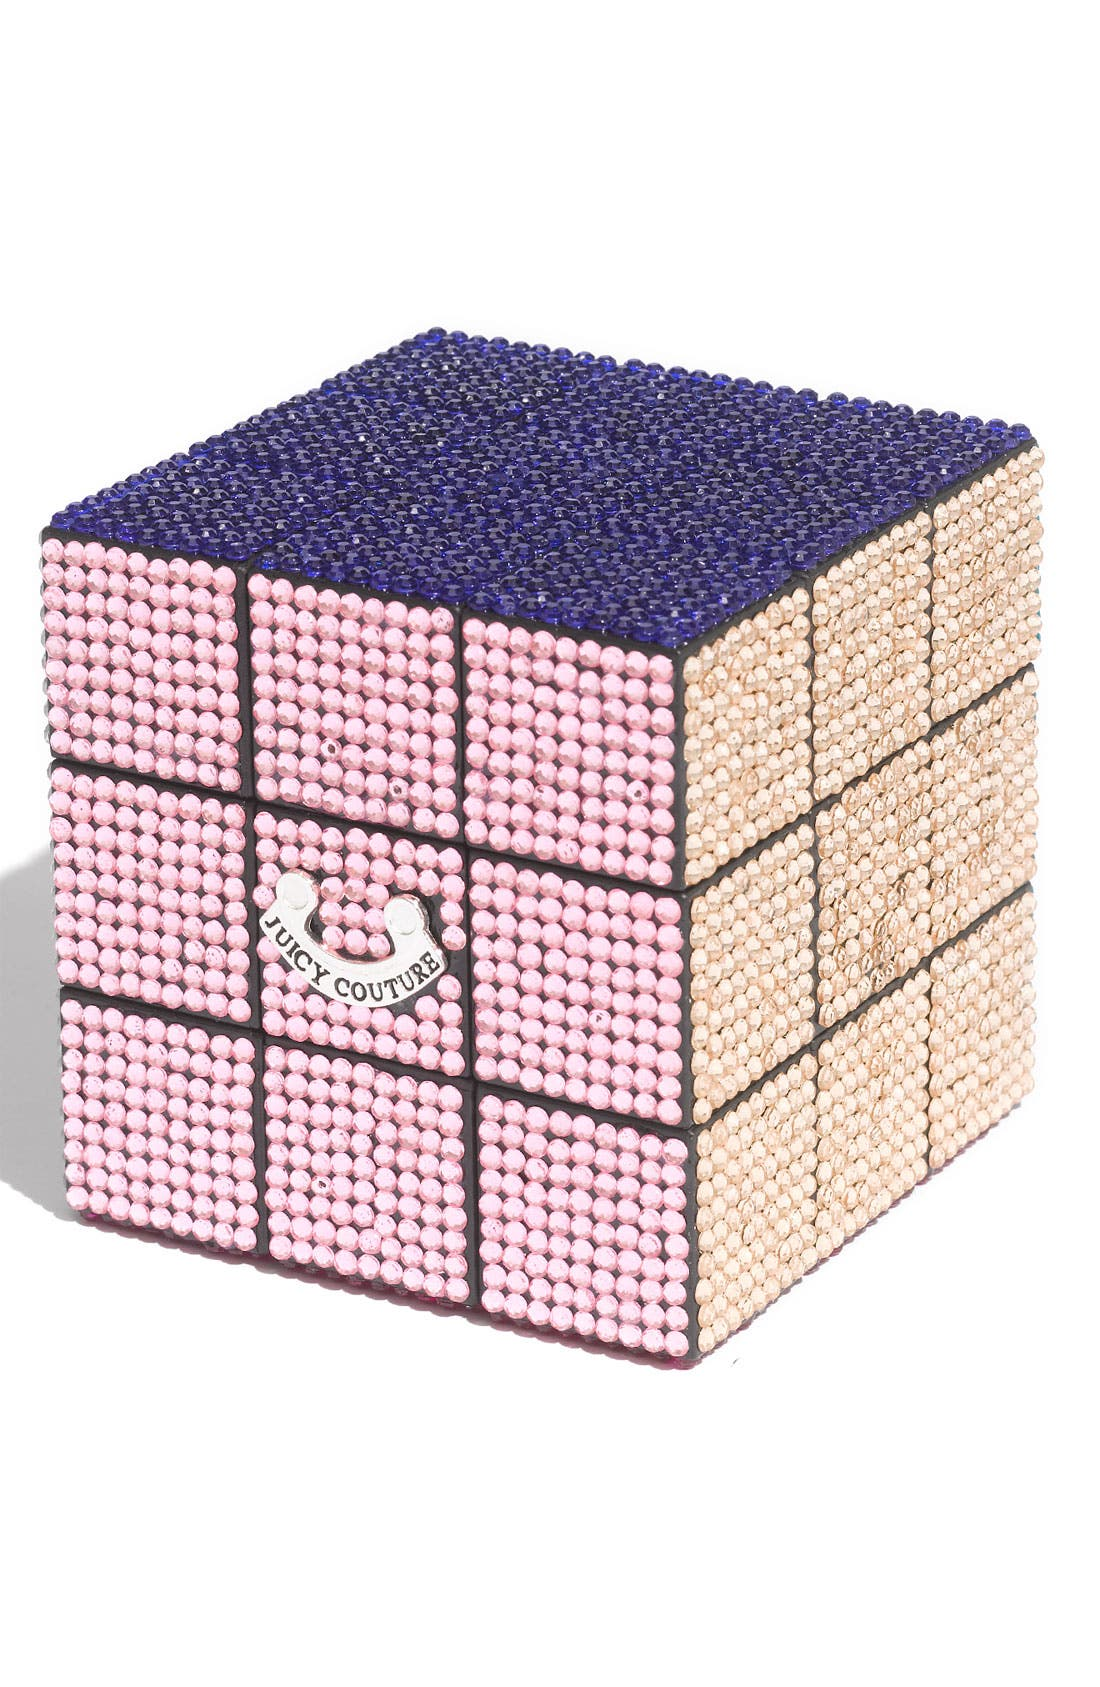 Main Image - Juicy Couture Embellished Puzzle Cube (Limited Edition)